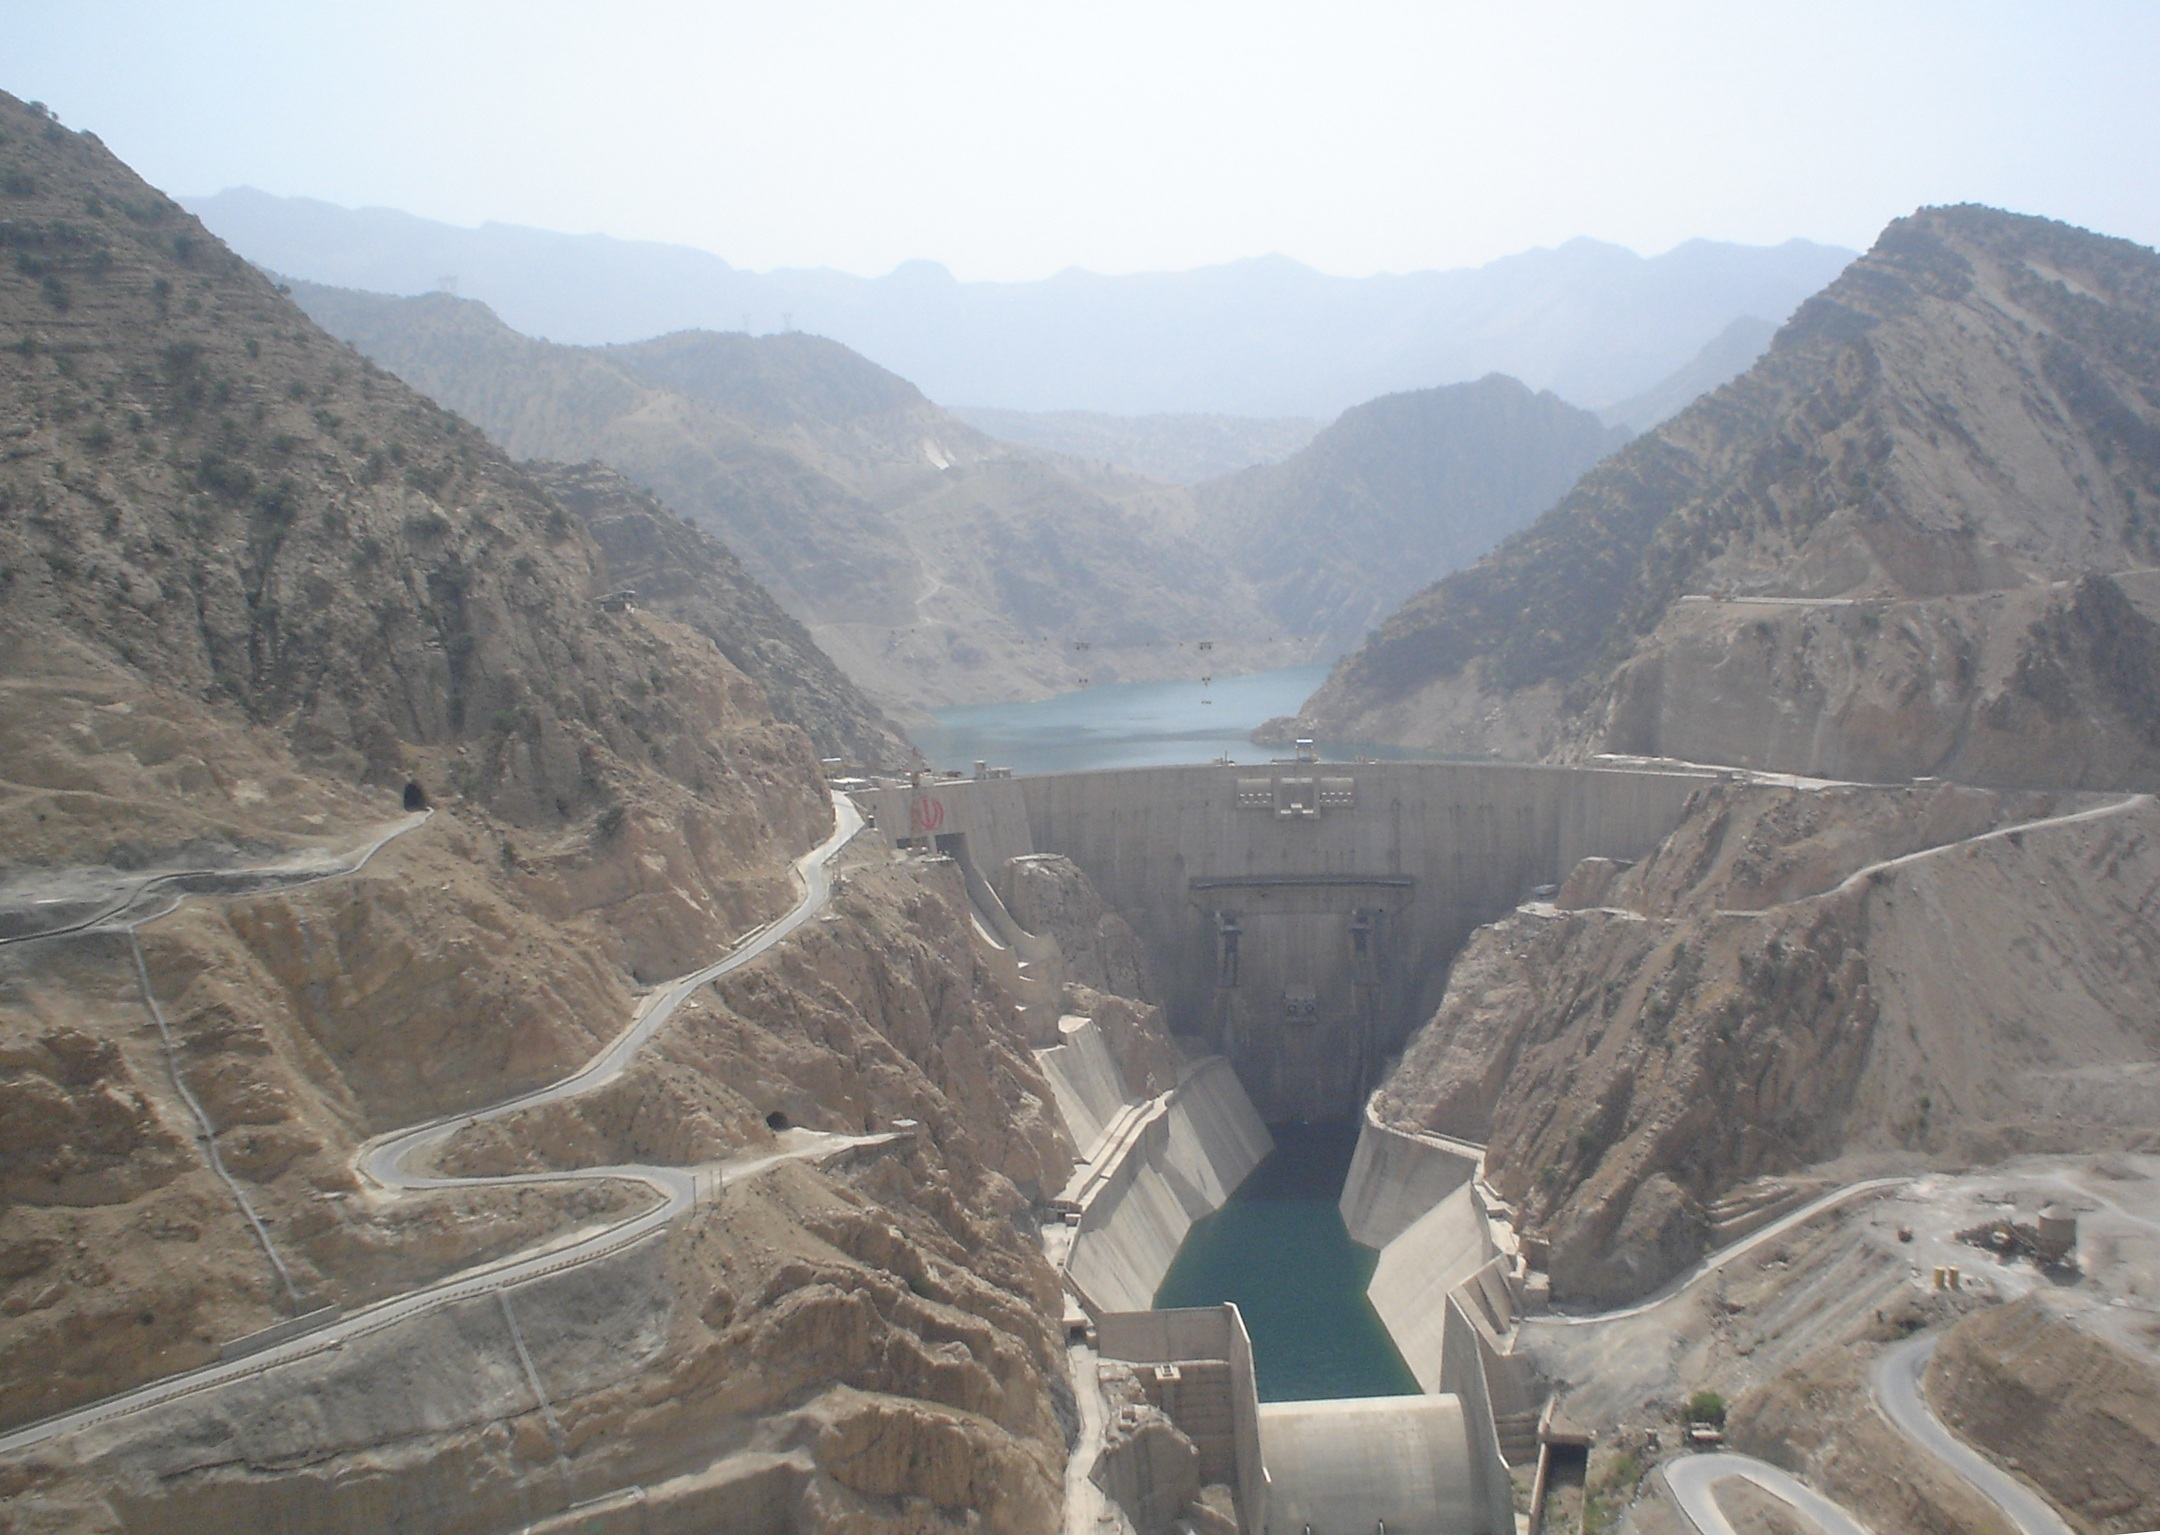 Dams: Impact of Large Dams on Society and Environment